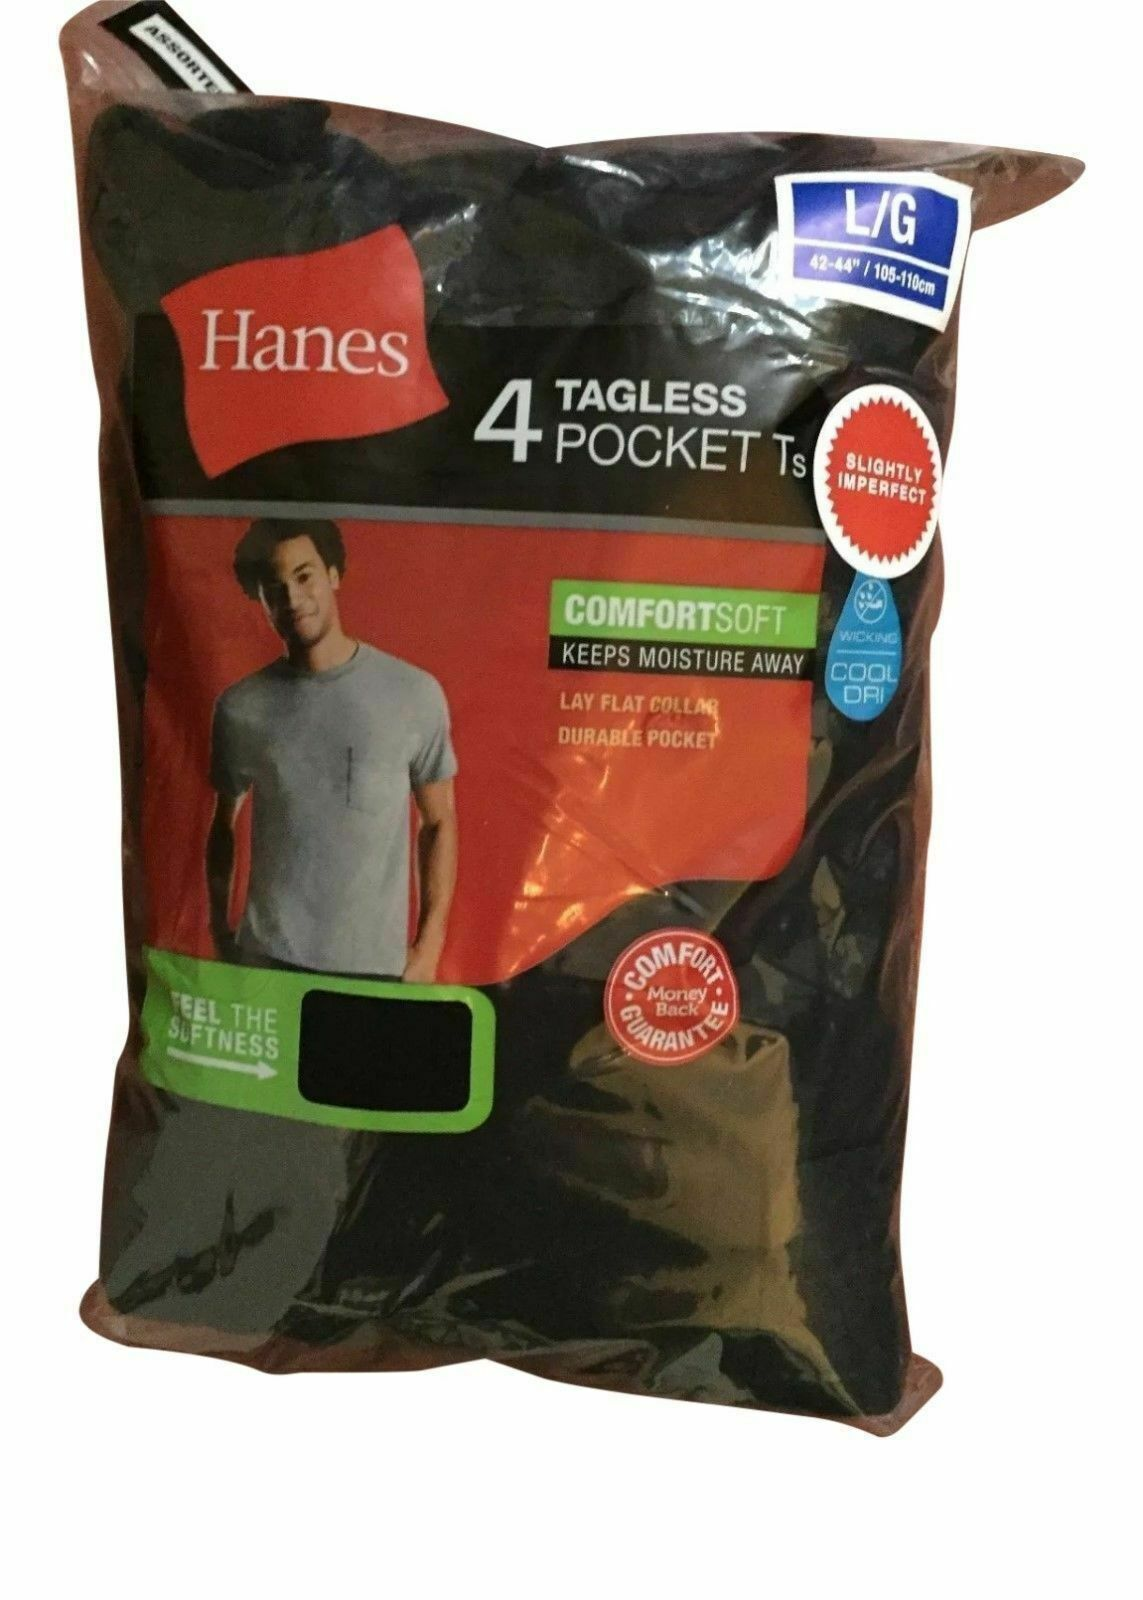 Hanes Men's Pocket T-shirts Tees 4-pack Sizes Clothing, Shoes & Accessories